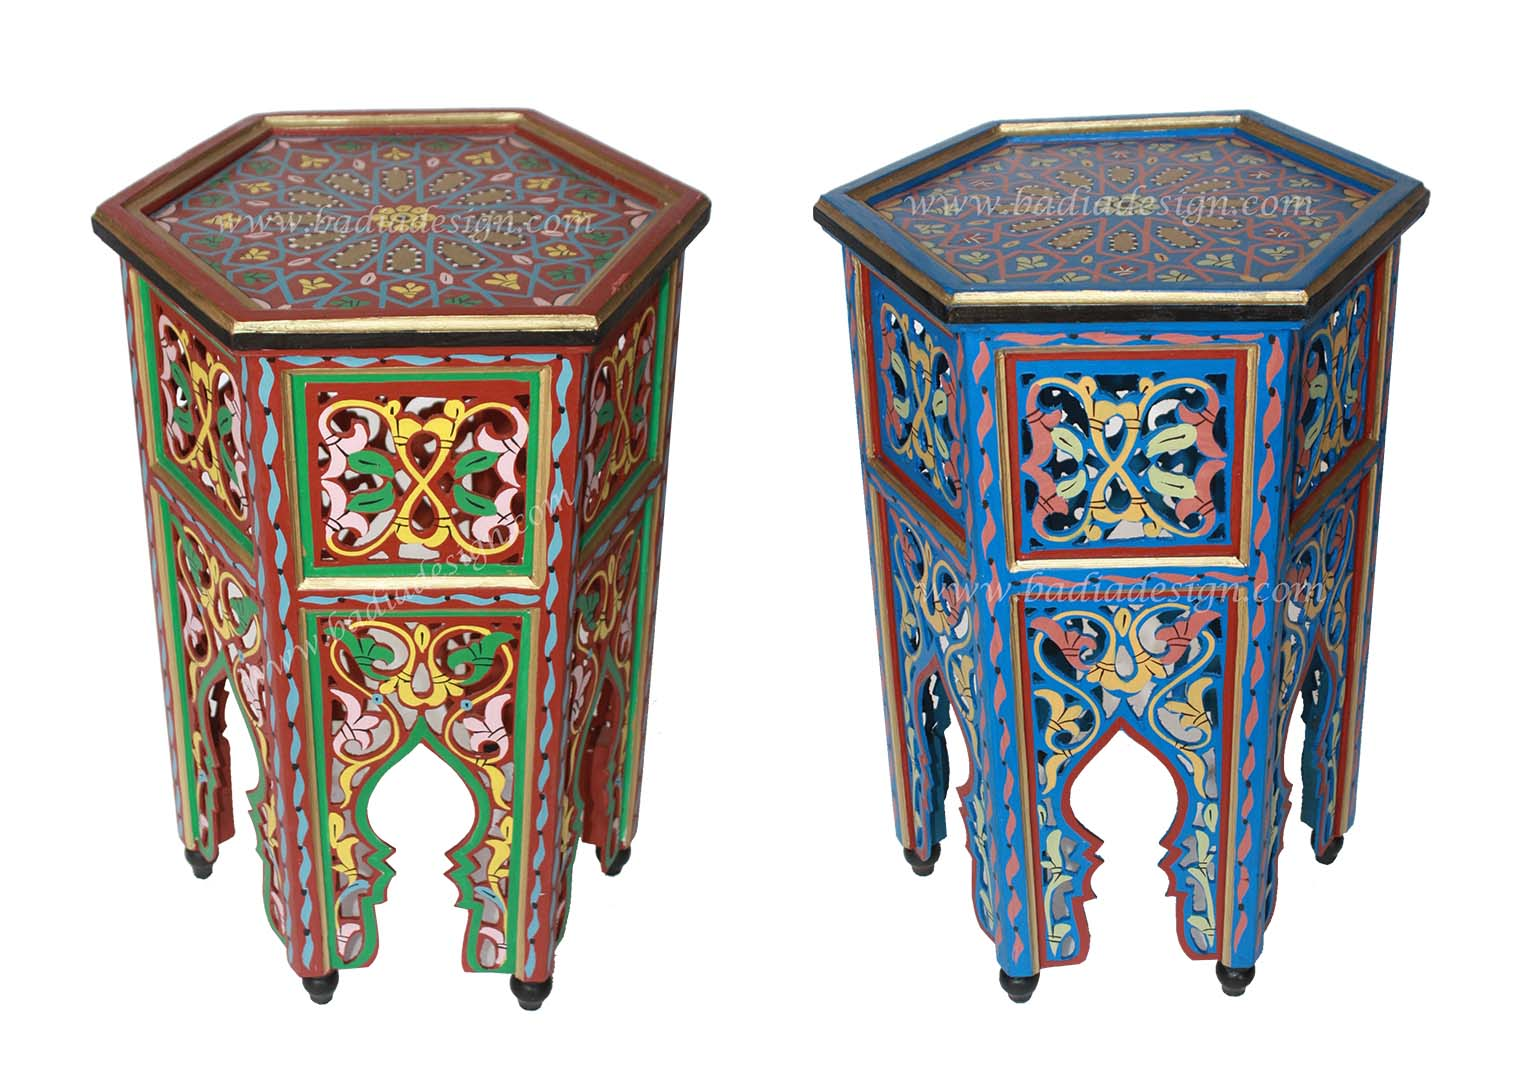 moroccan-hand-painted-side-table-hp007.jpg